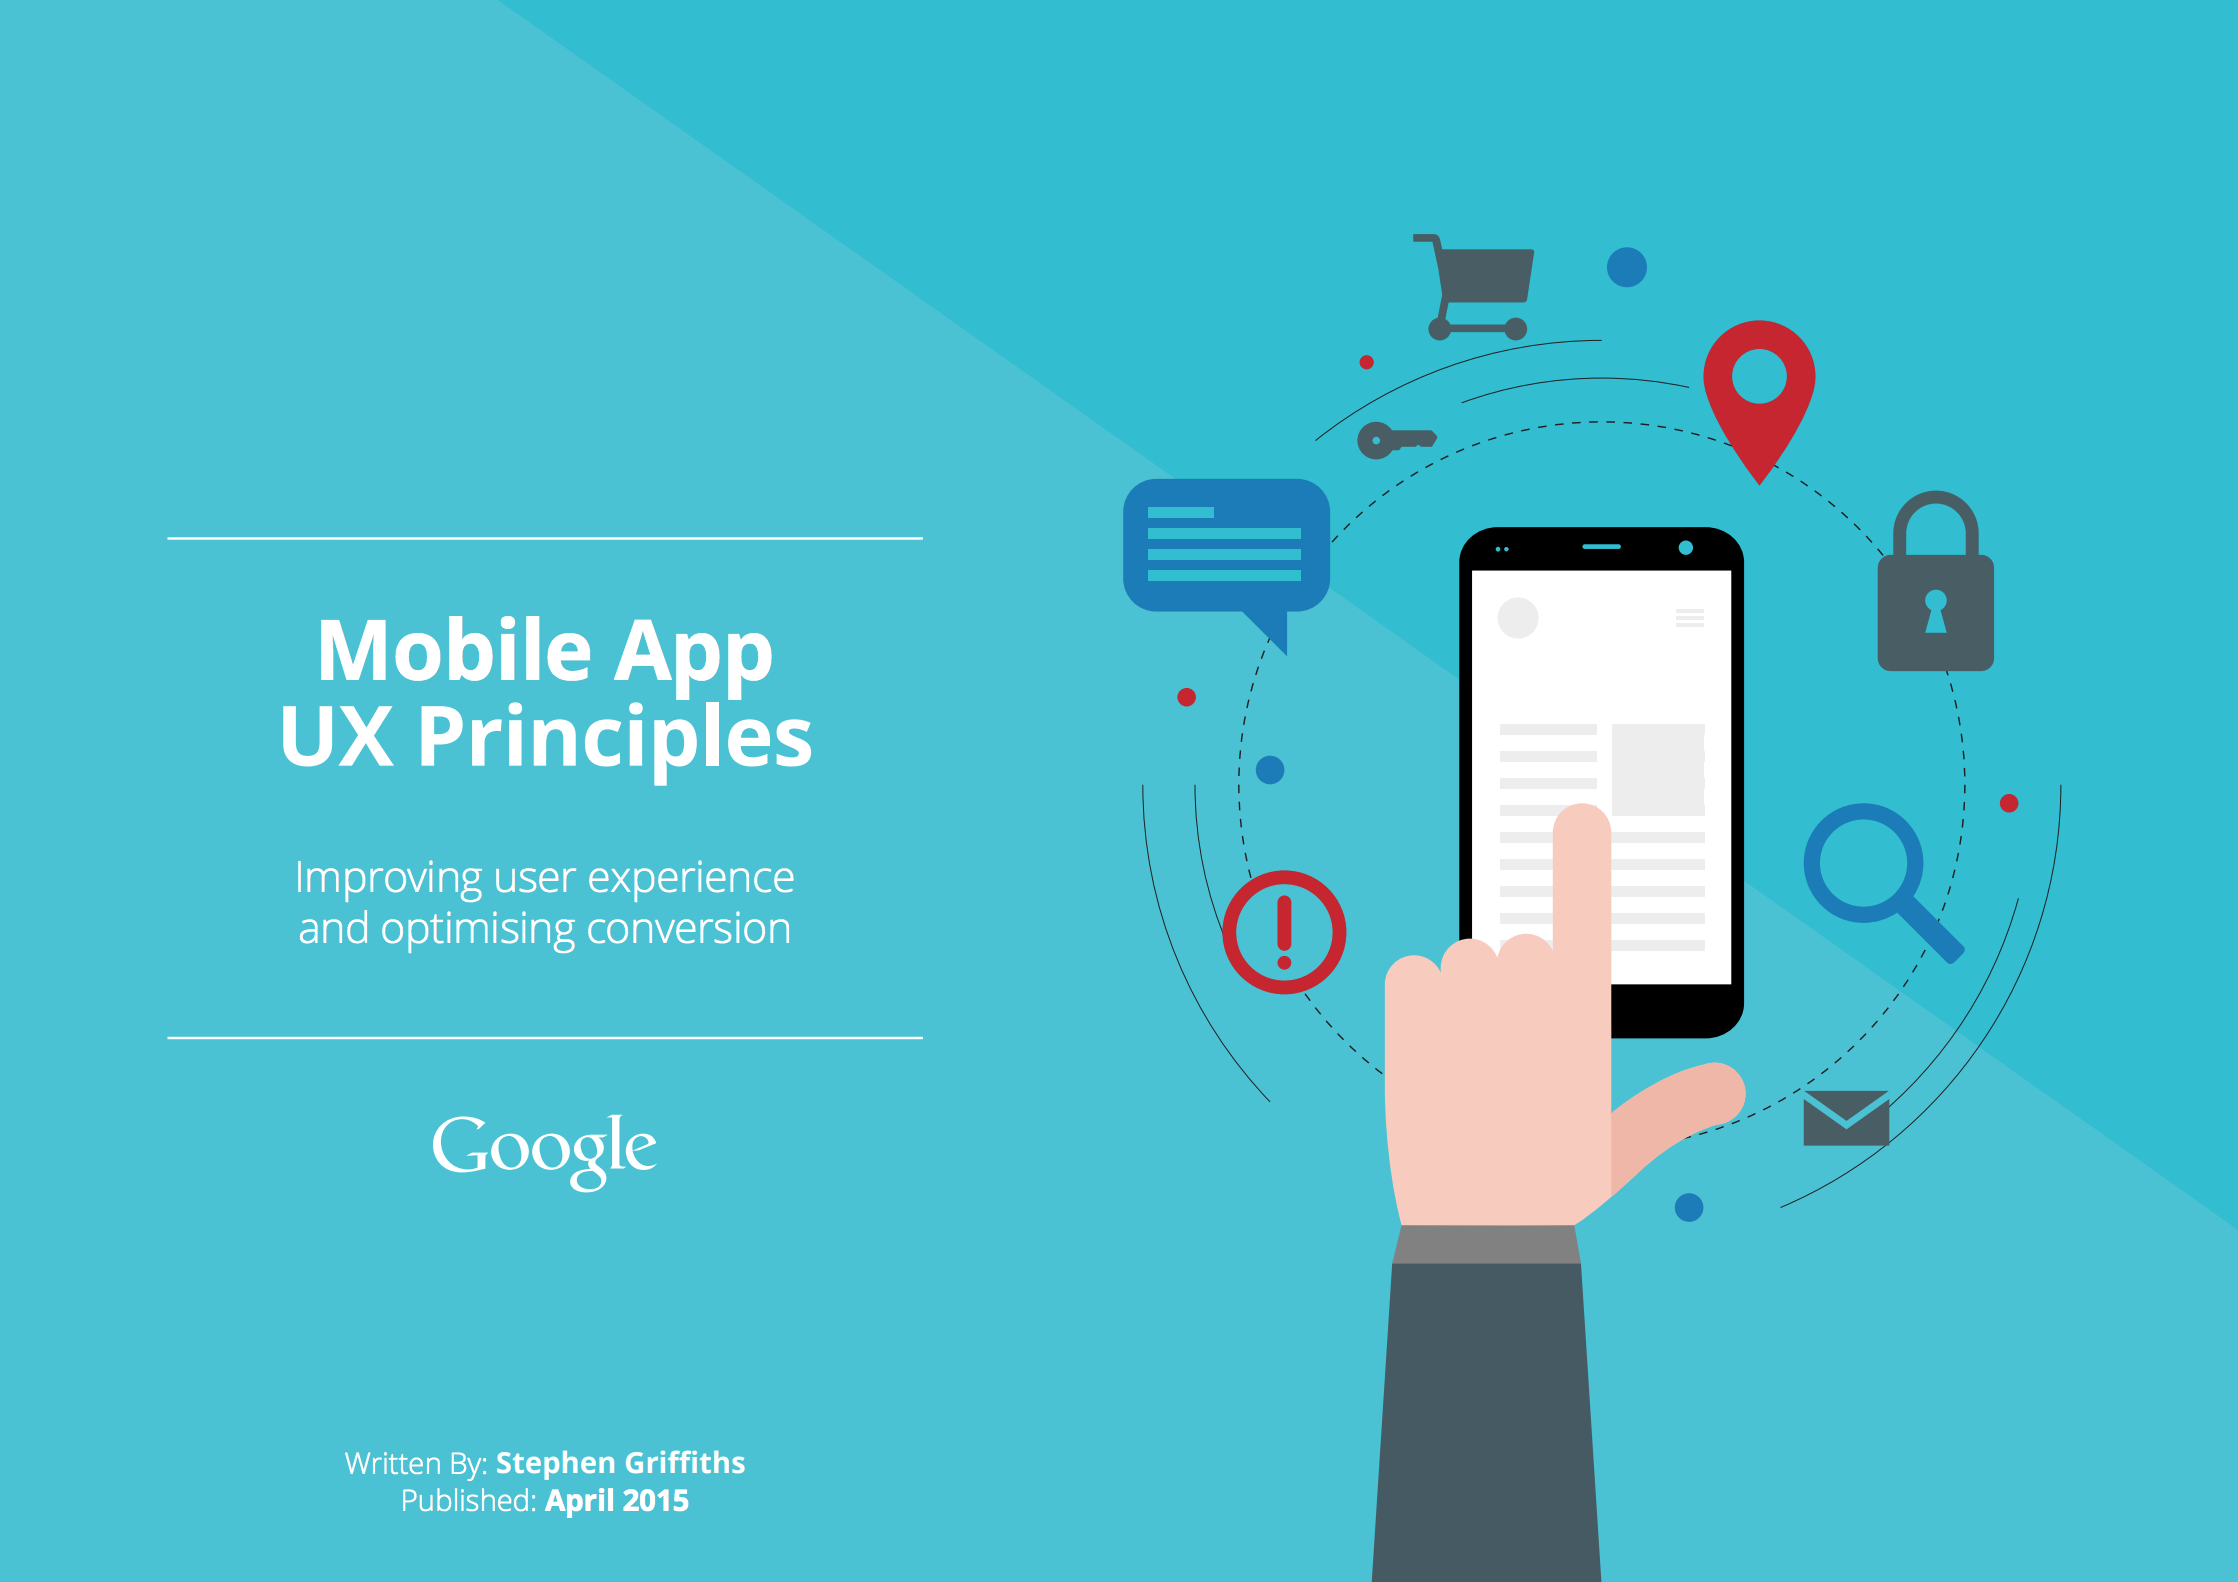 Google Mobile App UX Principles (by Stephen Griffiths)